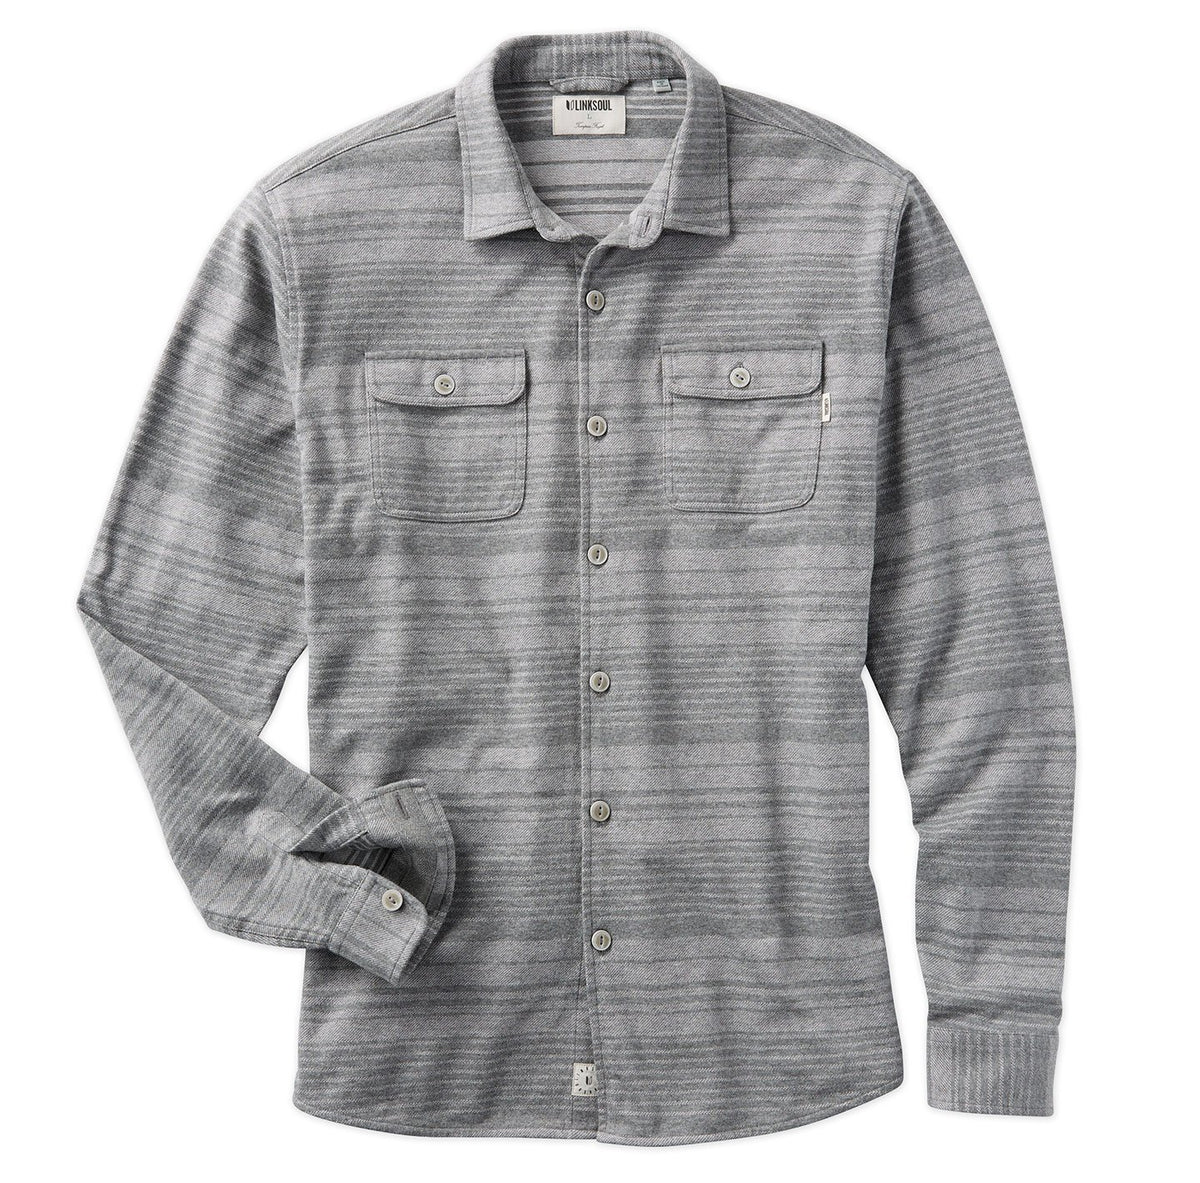 Horizon Stripe Shirt Jacket